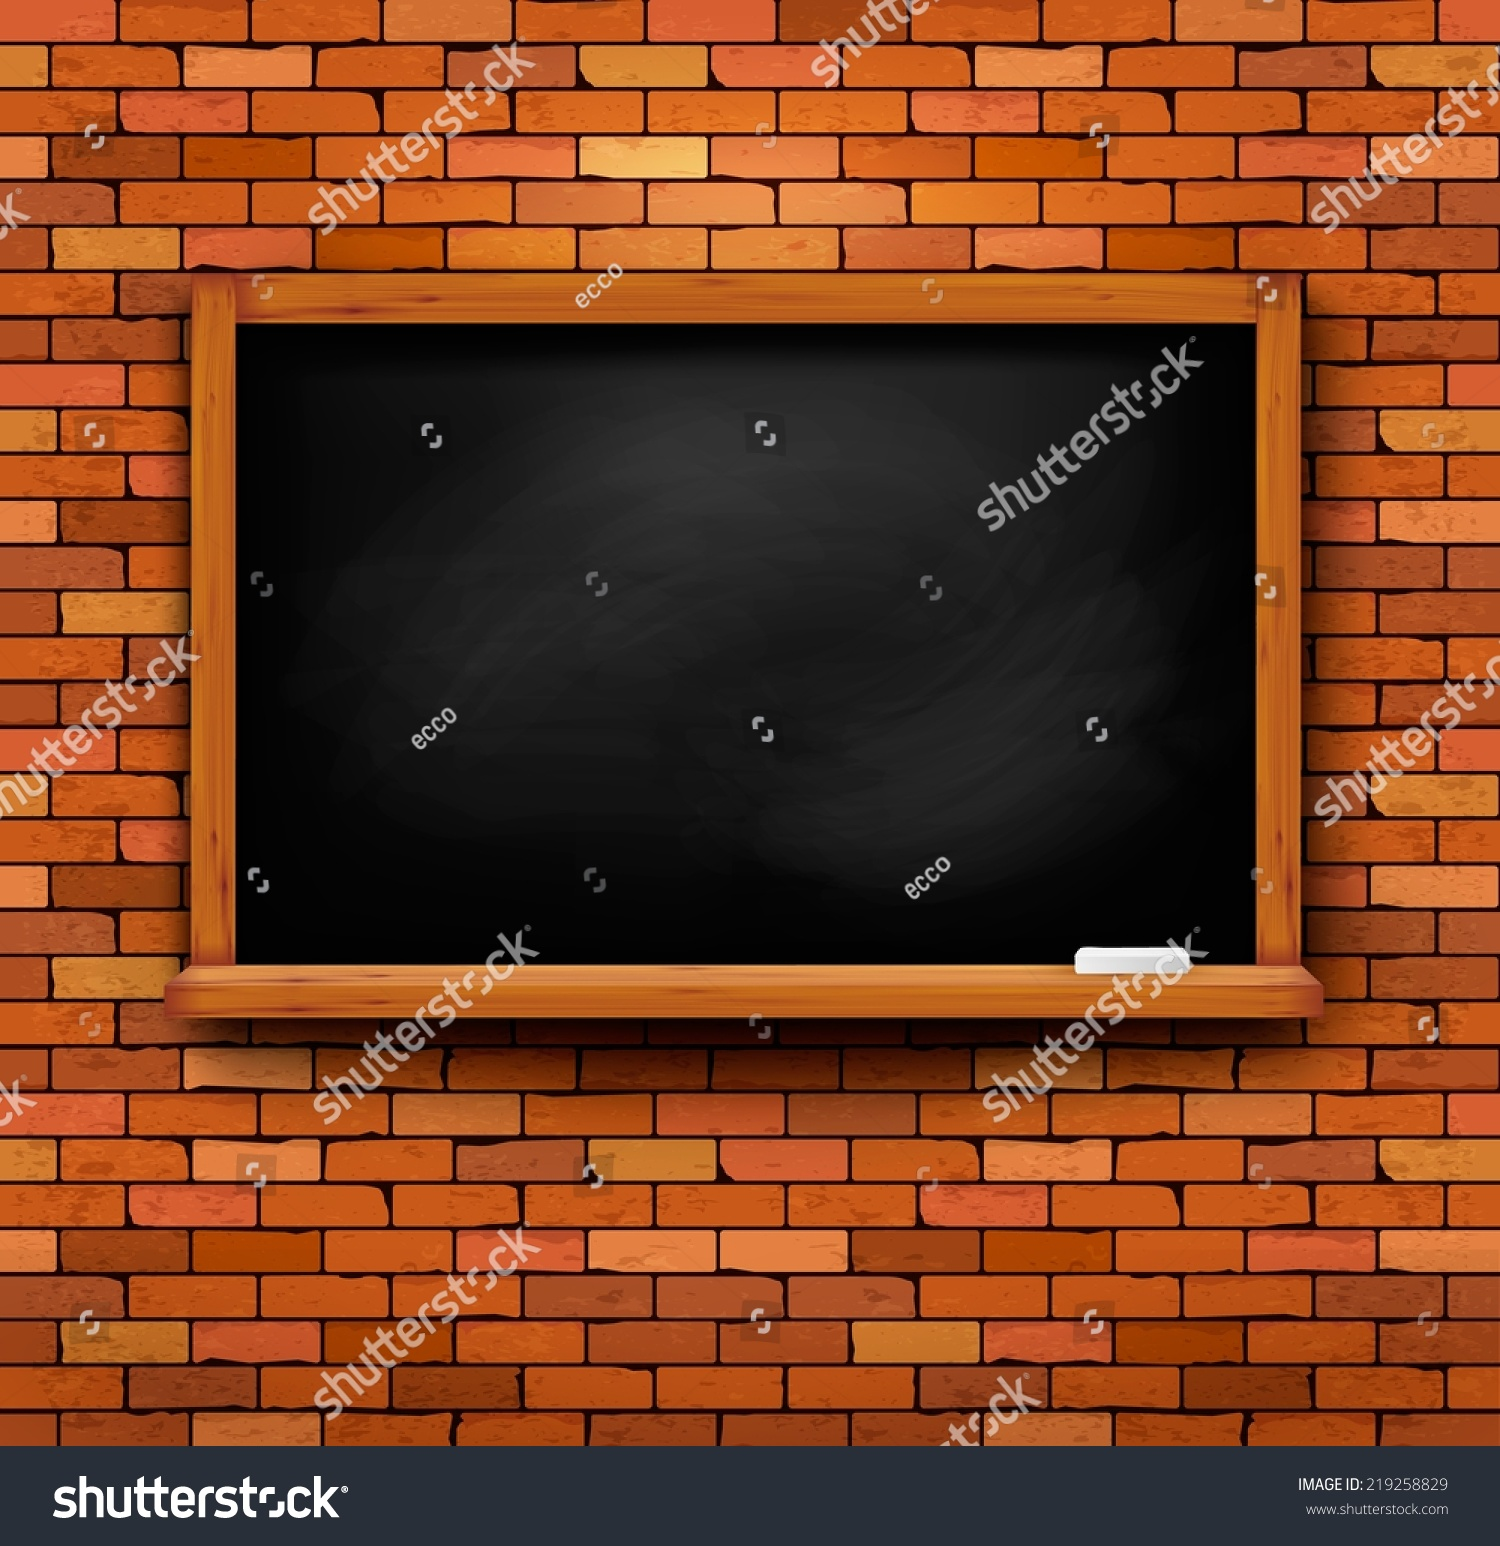 Brick Vector Picture Brick Veneers: Brick Wall With A Blackboard. Vector.